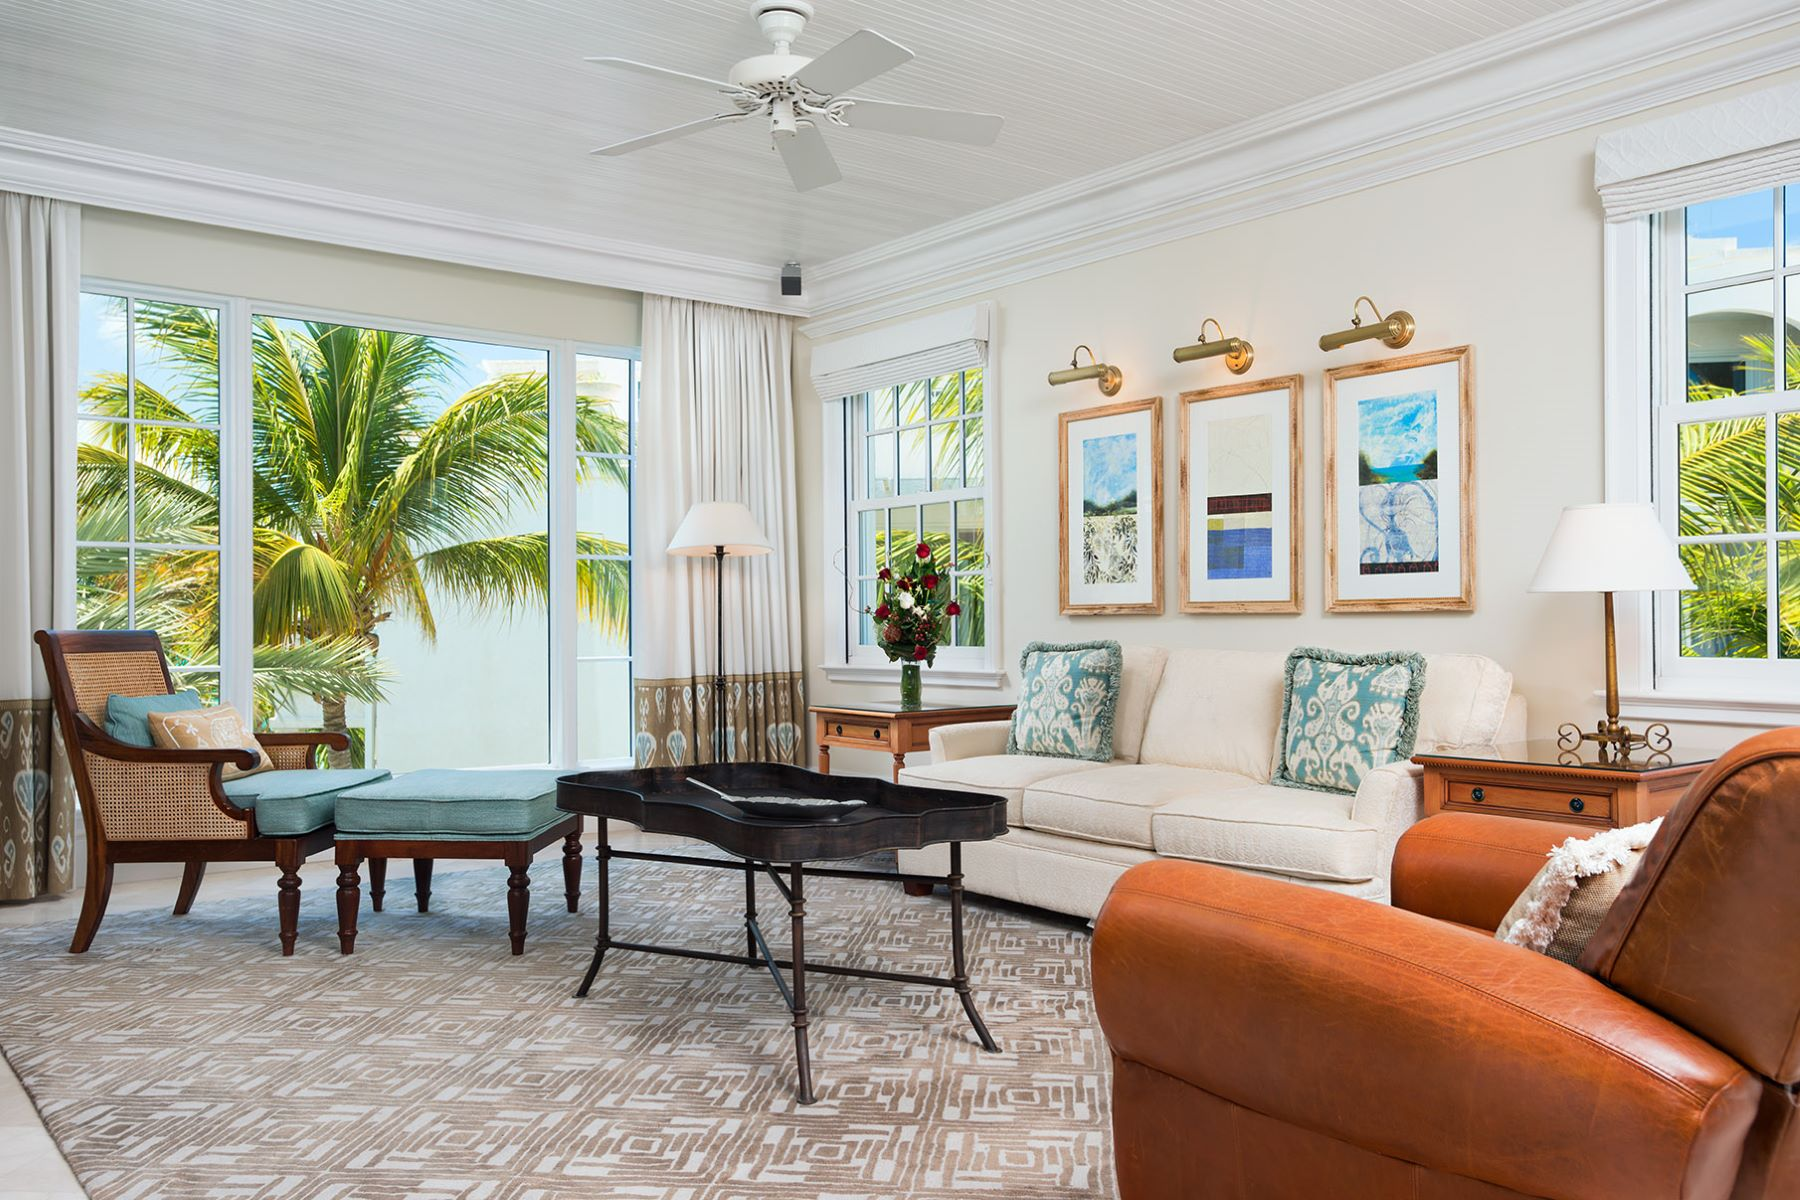 Additional photo for property listing at The Palms - Suite 2401.02 The Regent Palms, Grace Bay, Providenciales Turks And Caicos Islands